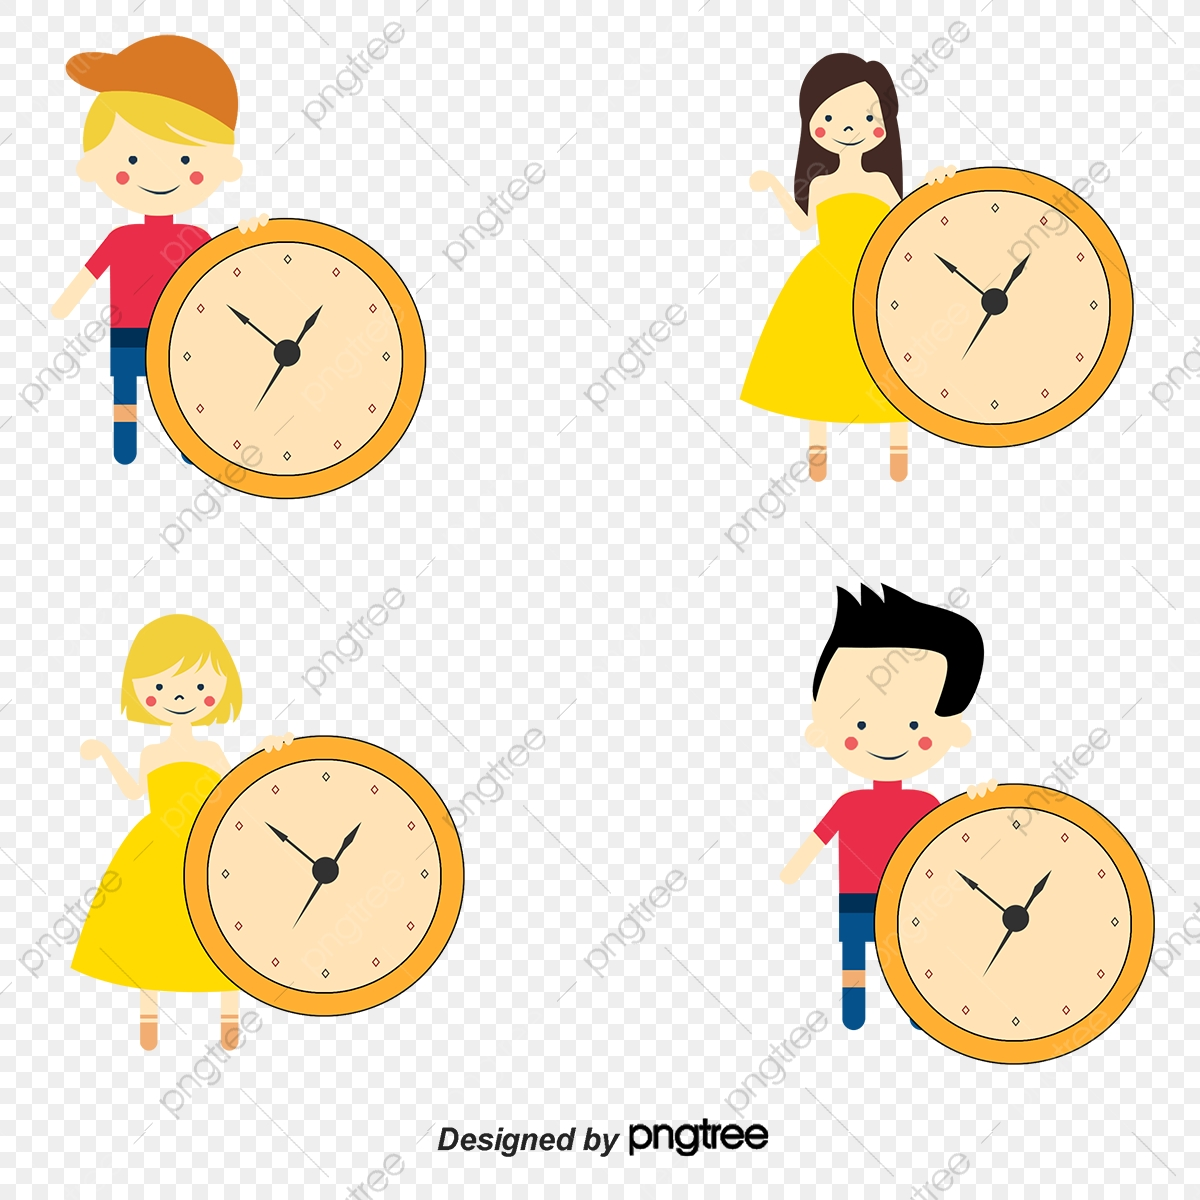 Time Clocks And Children Comics, Time, Watch, Child PNG and Vector